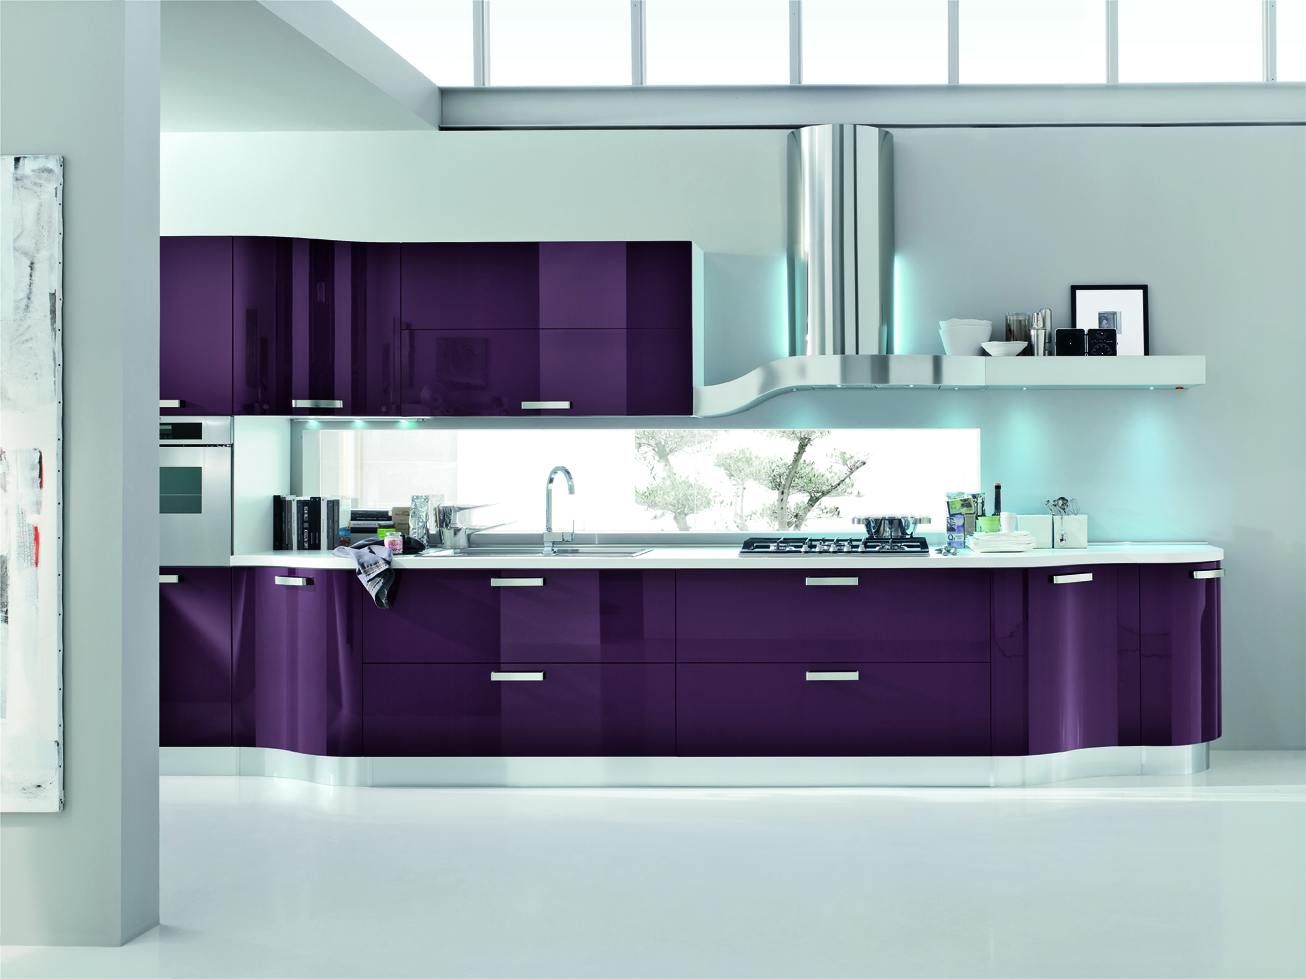 Kristal: wavy lines and softness of the shapes, for a touch of sophistication also in the kitchen